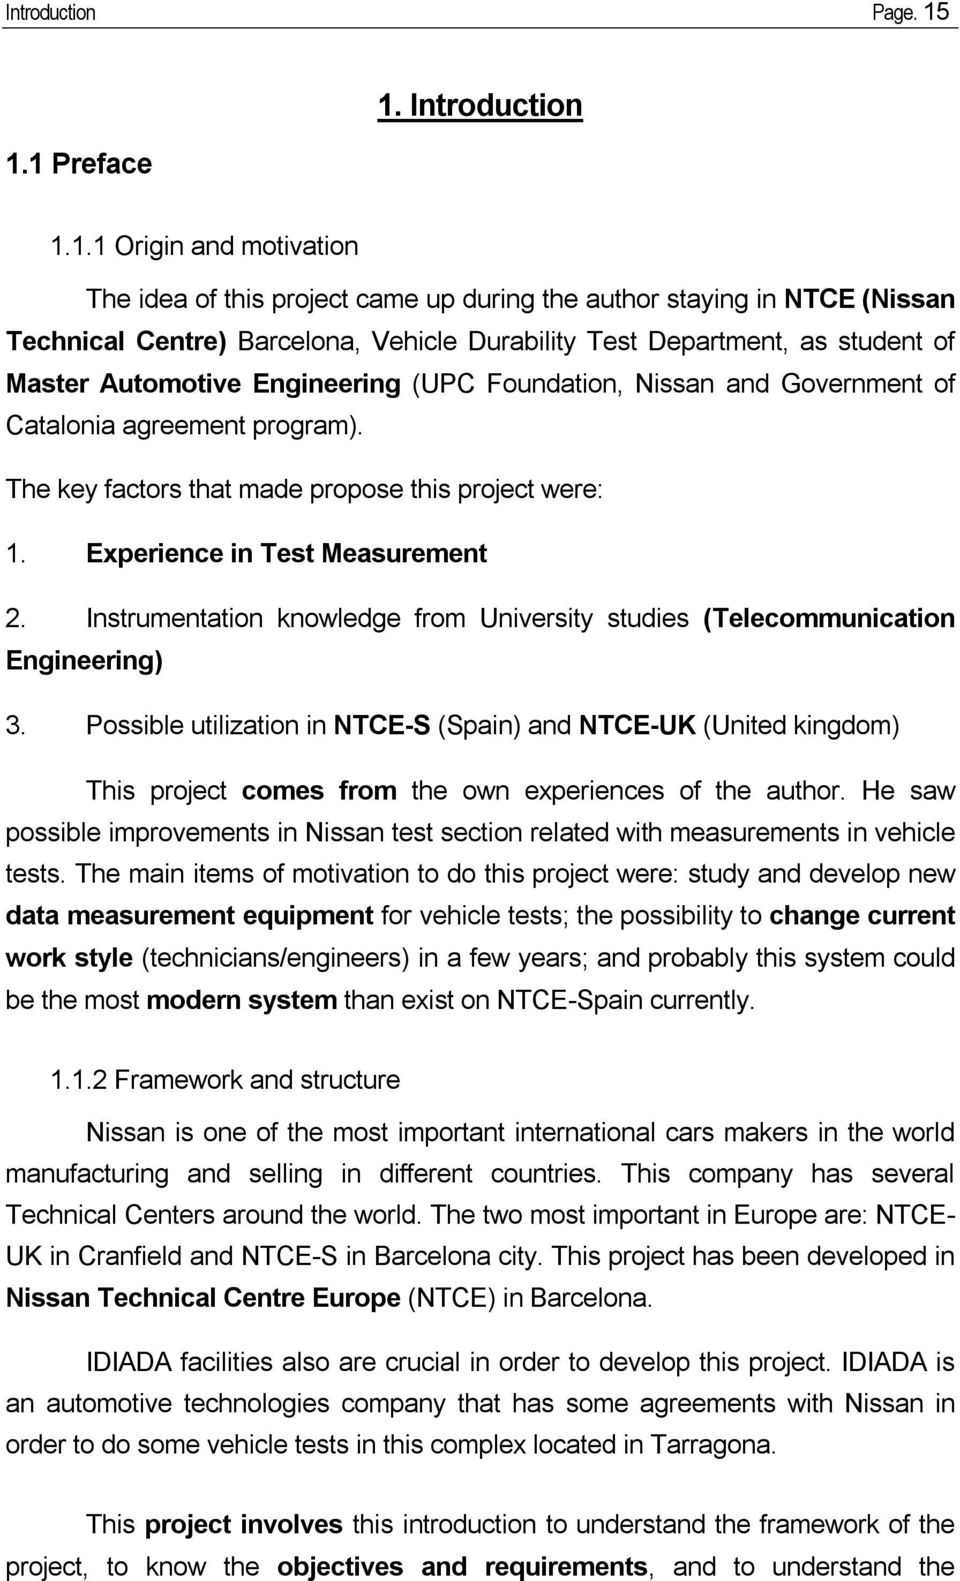 student of Master Automotive Engineering (UPC Foundation, Nissan and Government of Catalonia agreement program). The key factors that made propose this project were: 1.